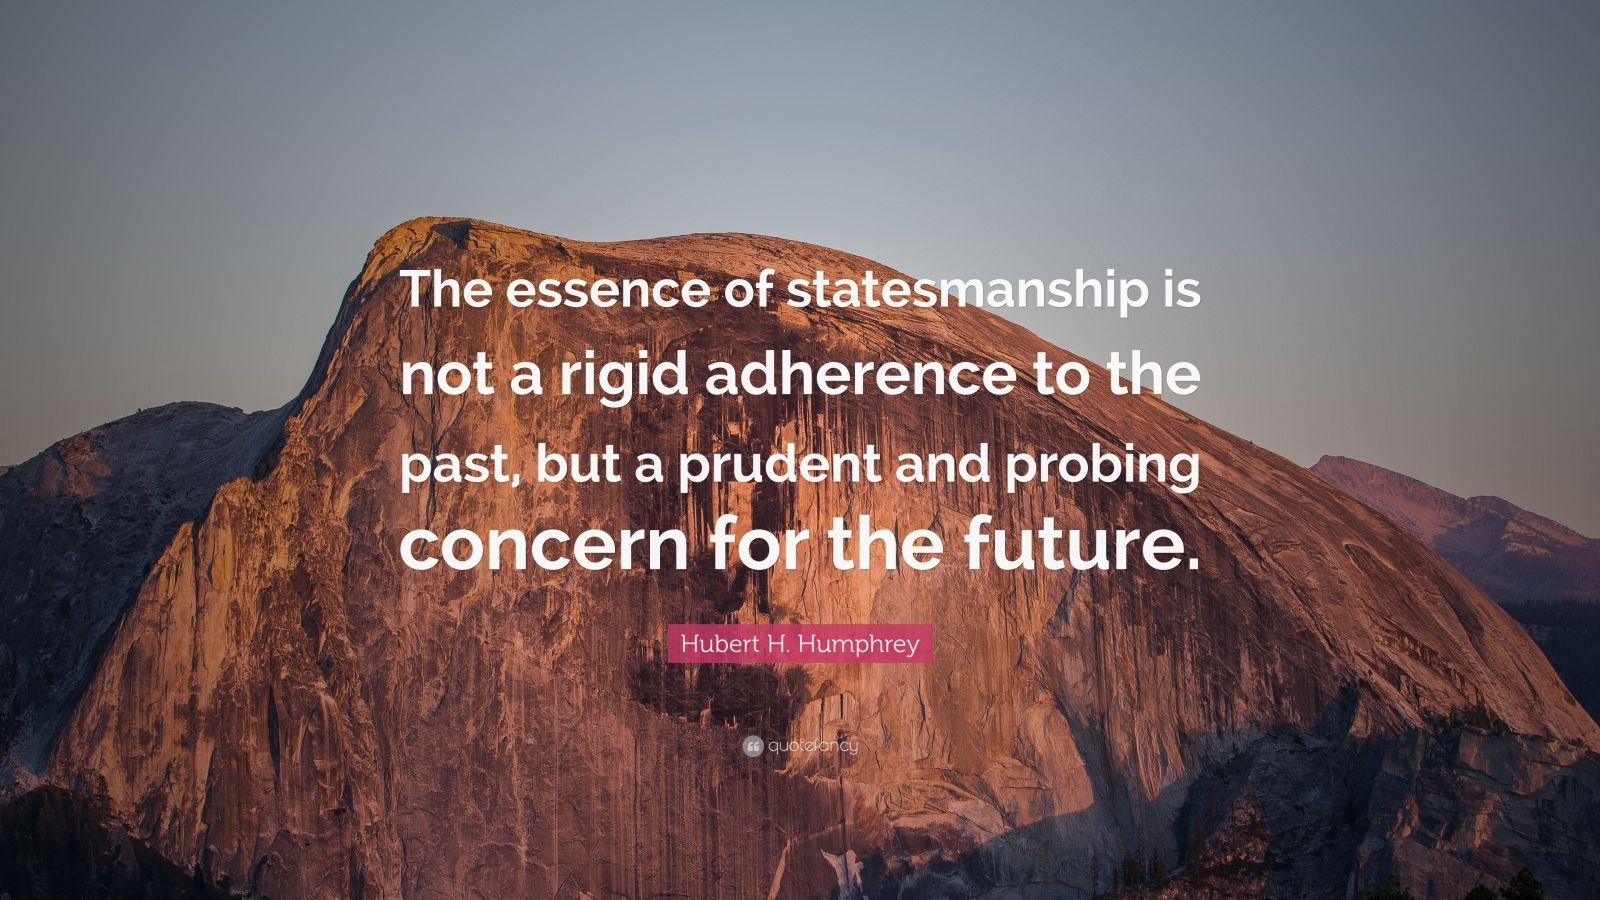 """Hubert H. Humphrey Quote: """"The essence of statesmanship is not a rigid adherence to the past, but a prudent and probing concern for the future."""""""